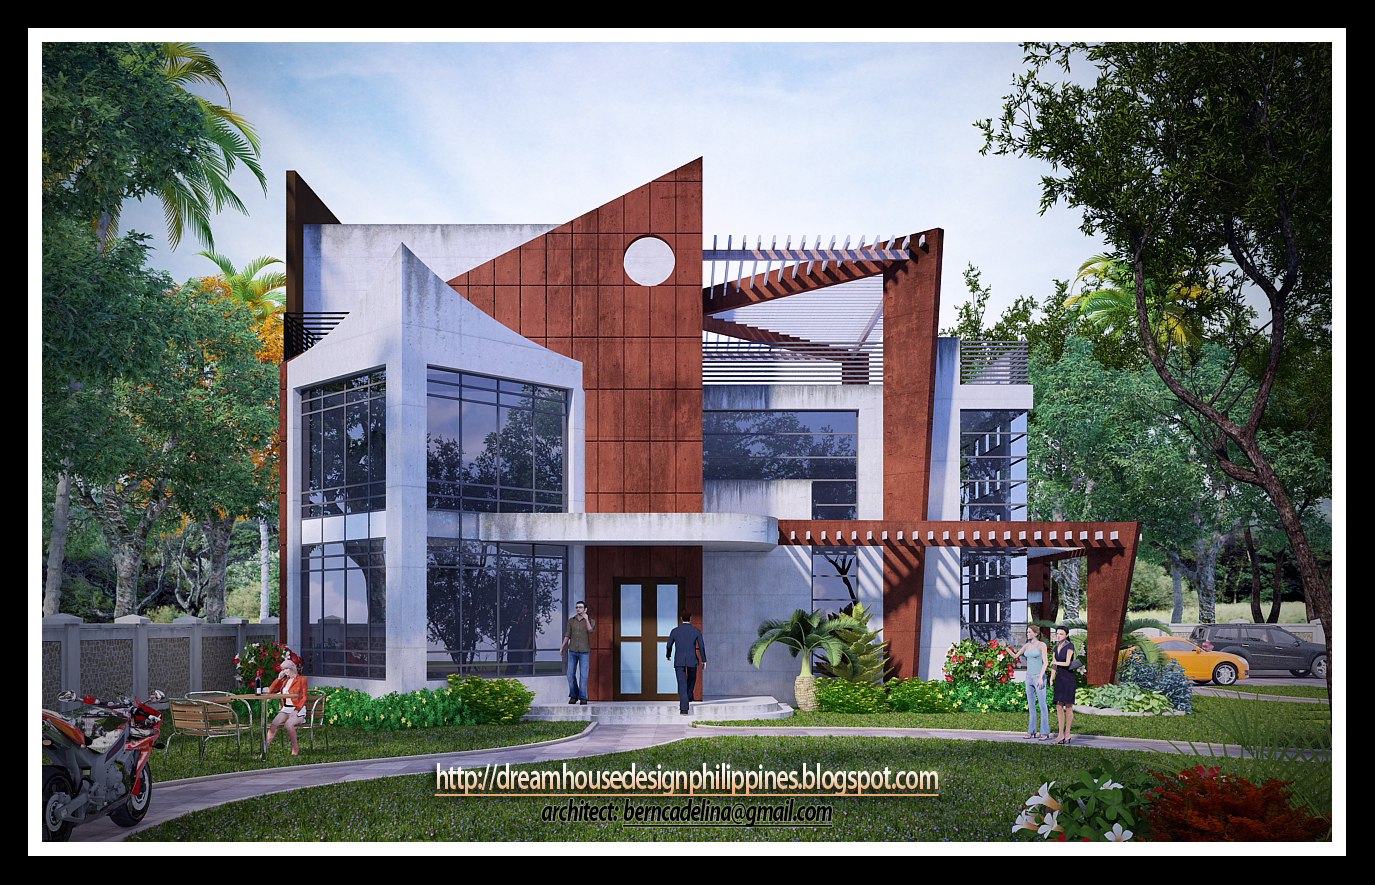 House plans and design architectural home designs in for Home designs philippines